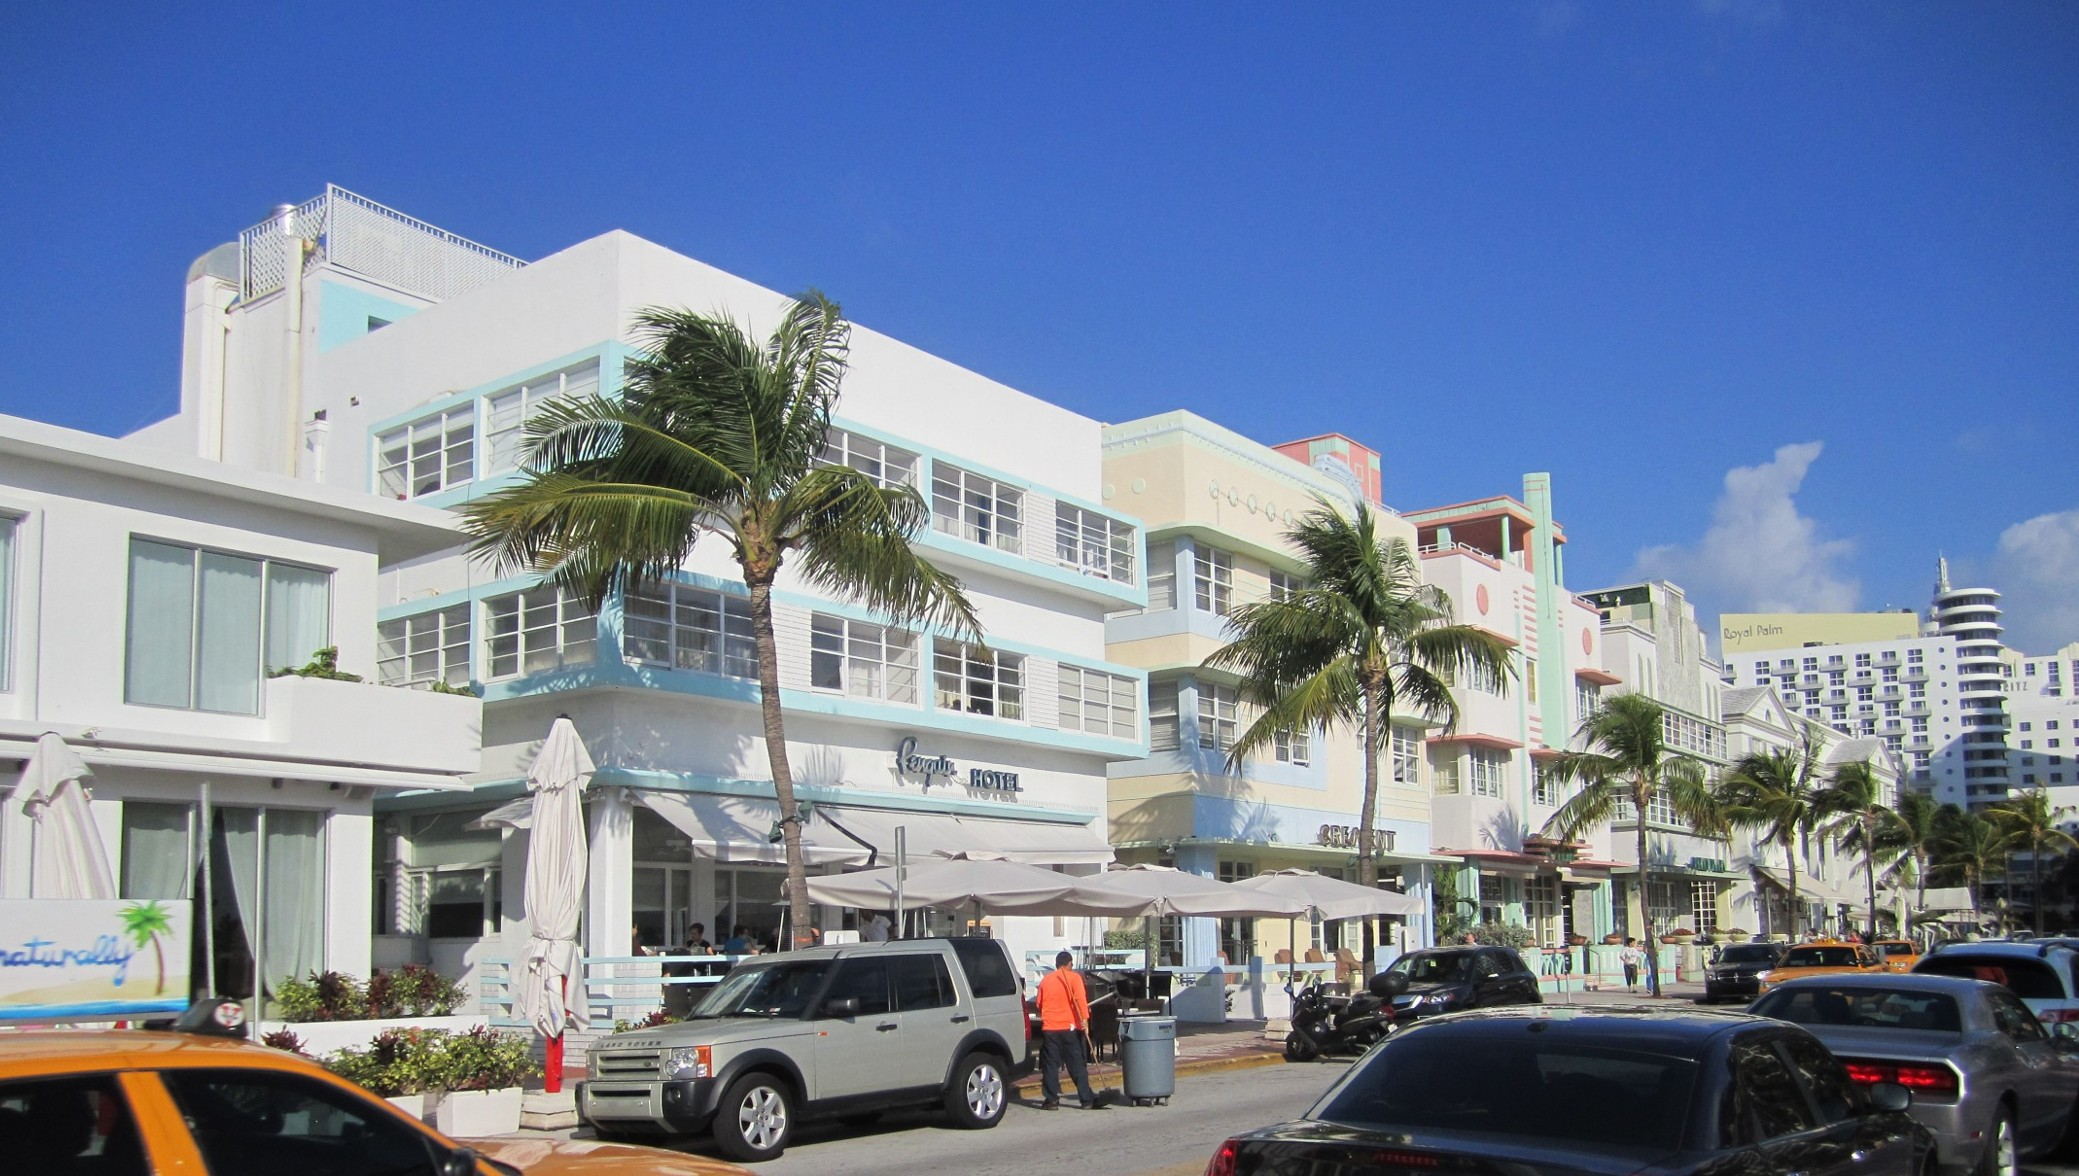 Miami Airport To Key West By Car